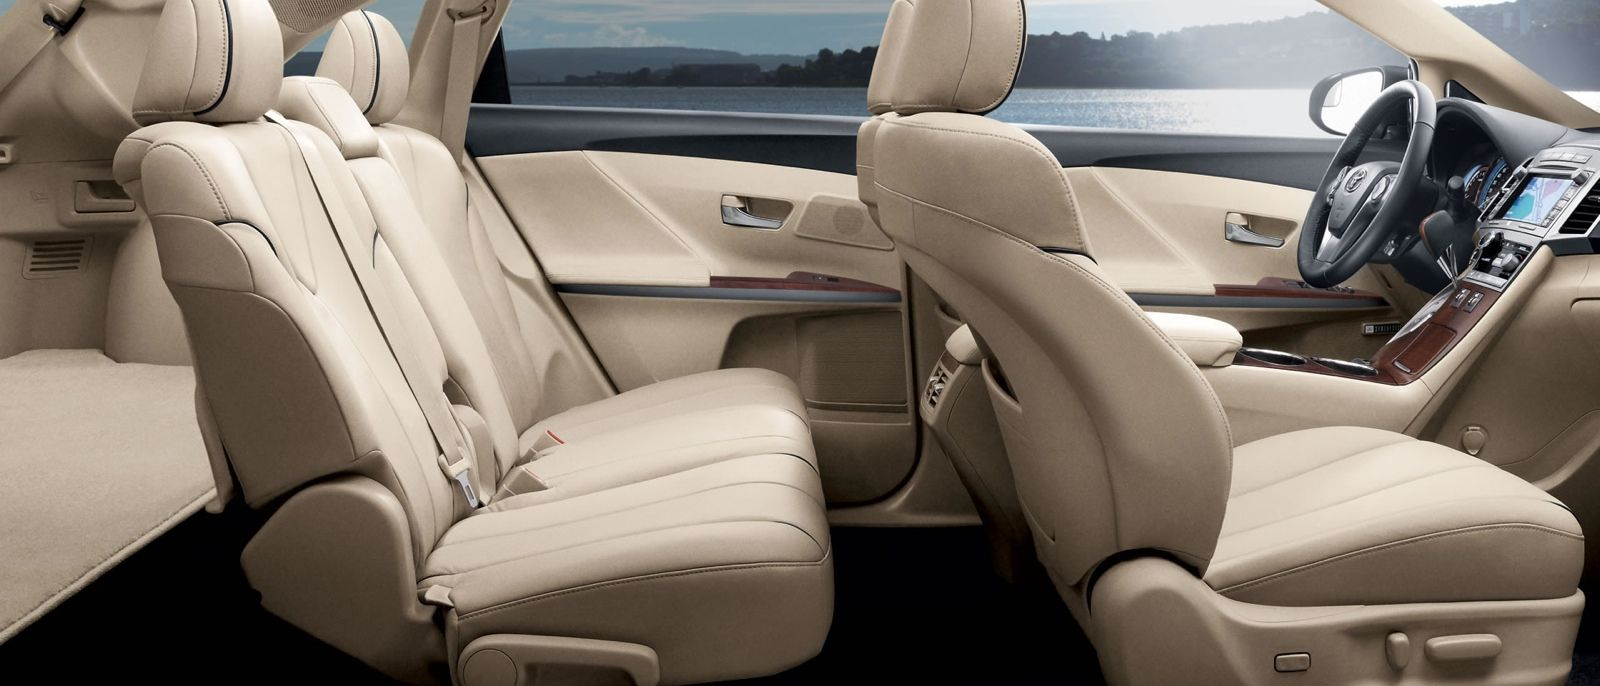 Best 25 toyota venza ideas on pinterest toyota girl toyota and dream cars